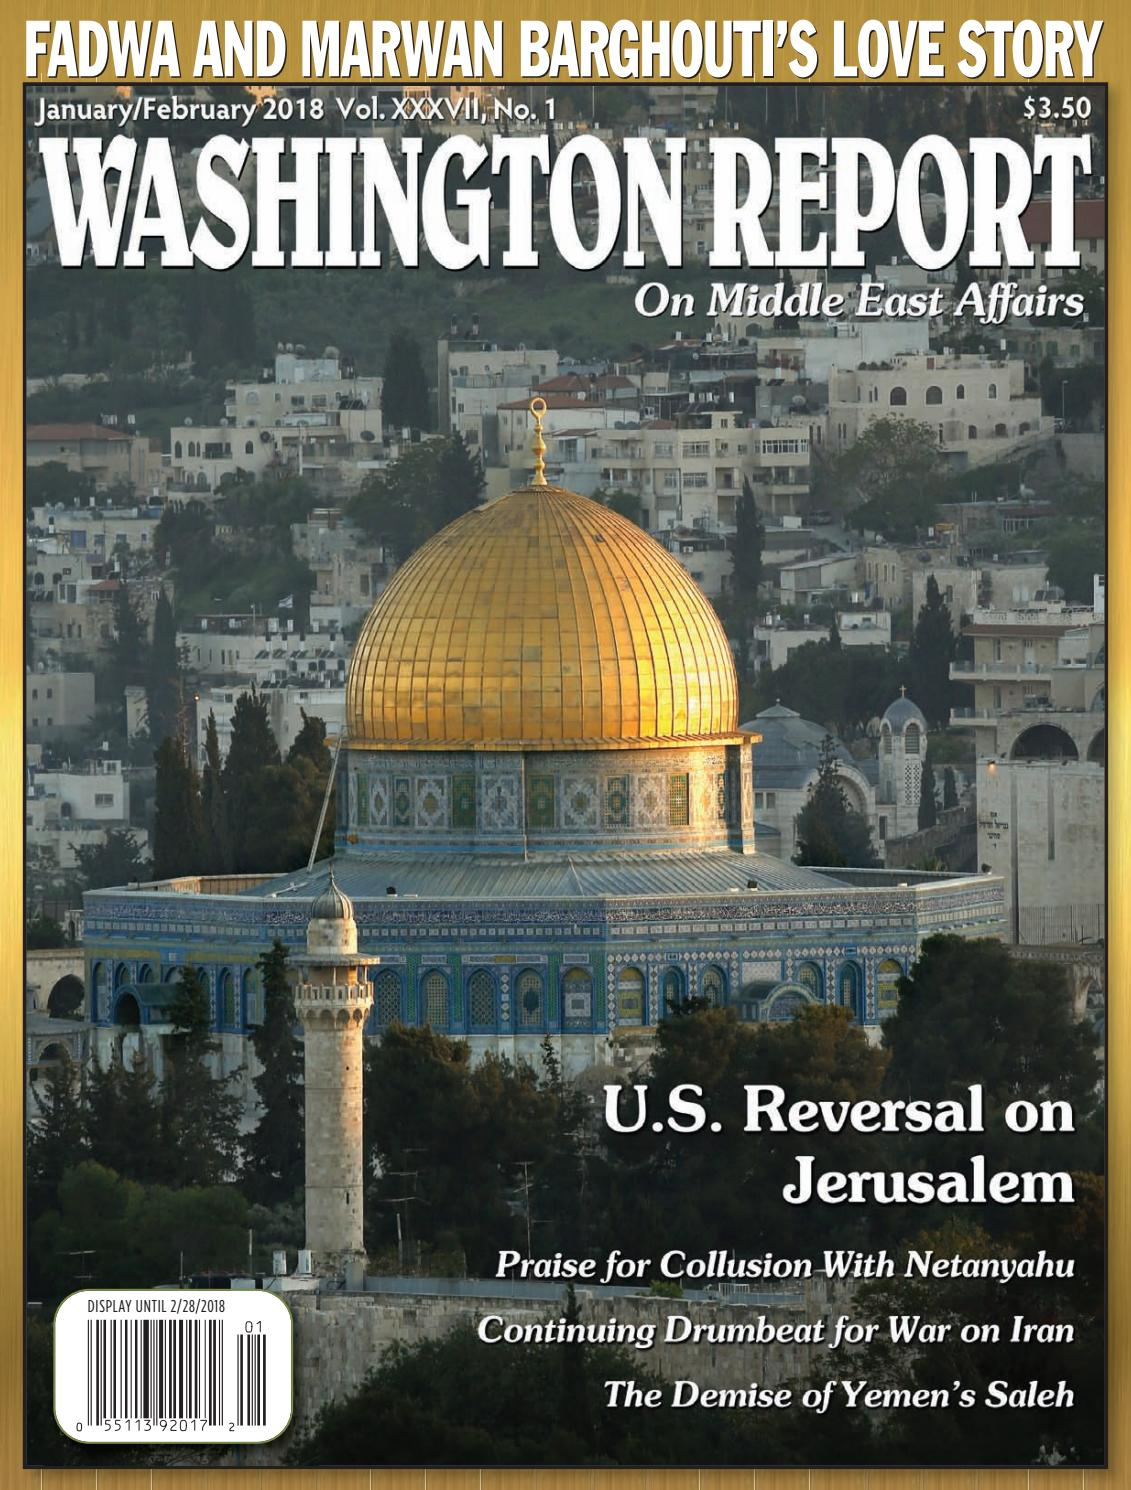 Middle East Map Your Child Learns%0A Washington Report  January February       Vol  XXXVII  No